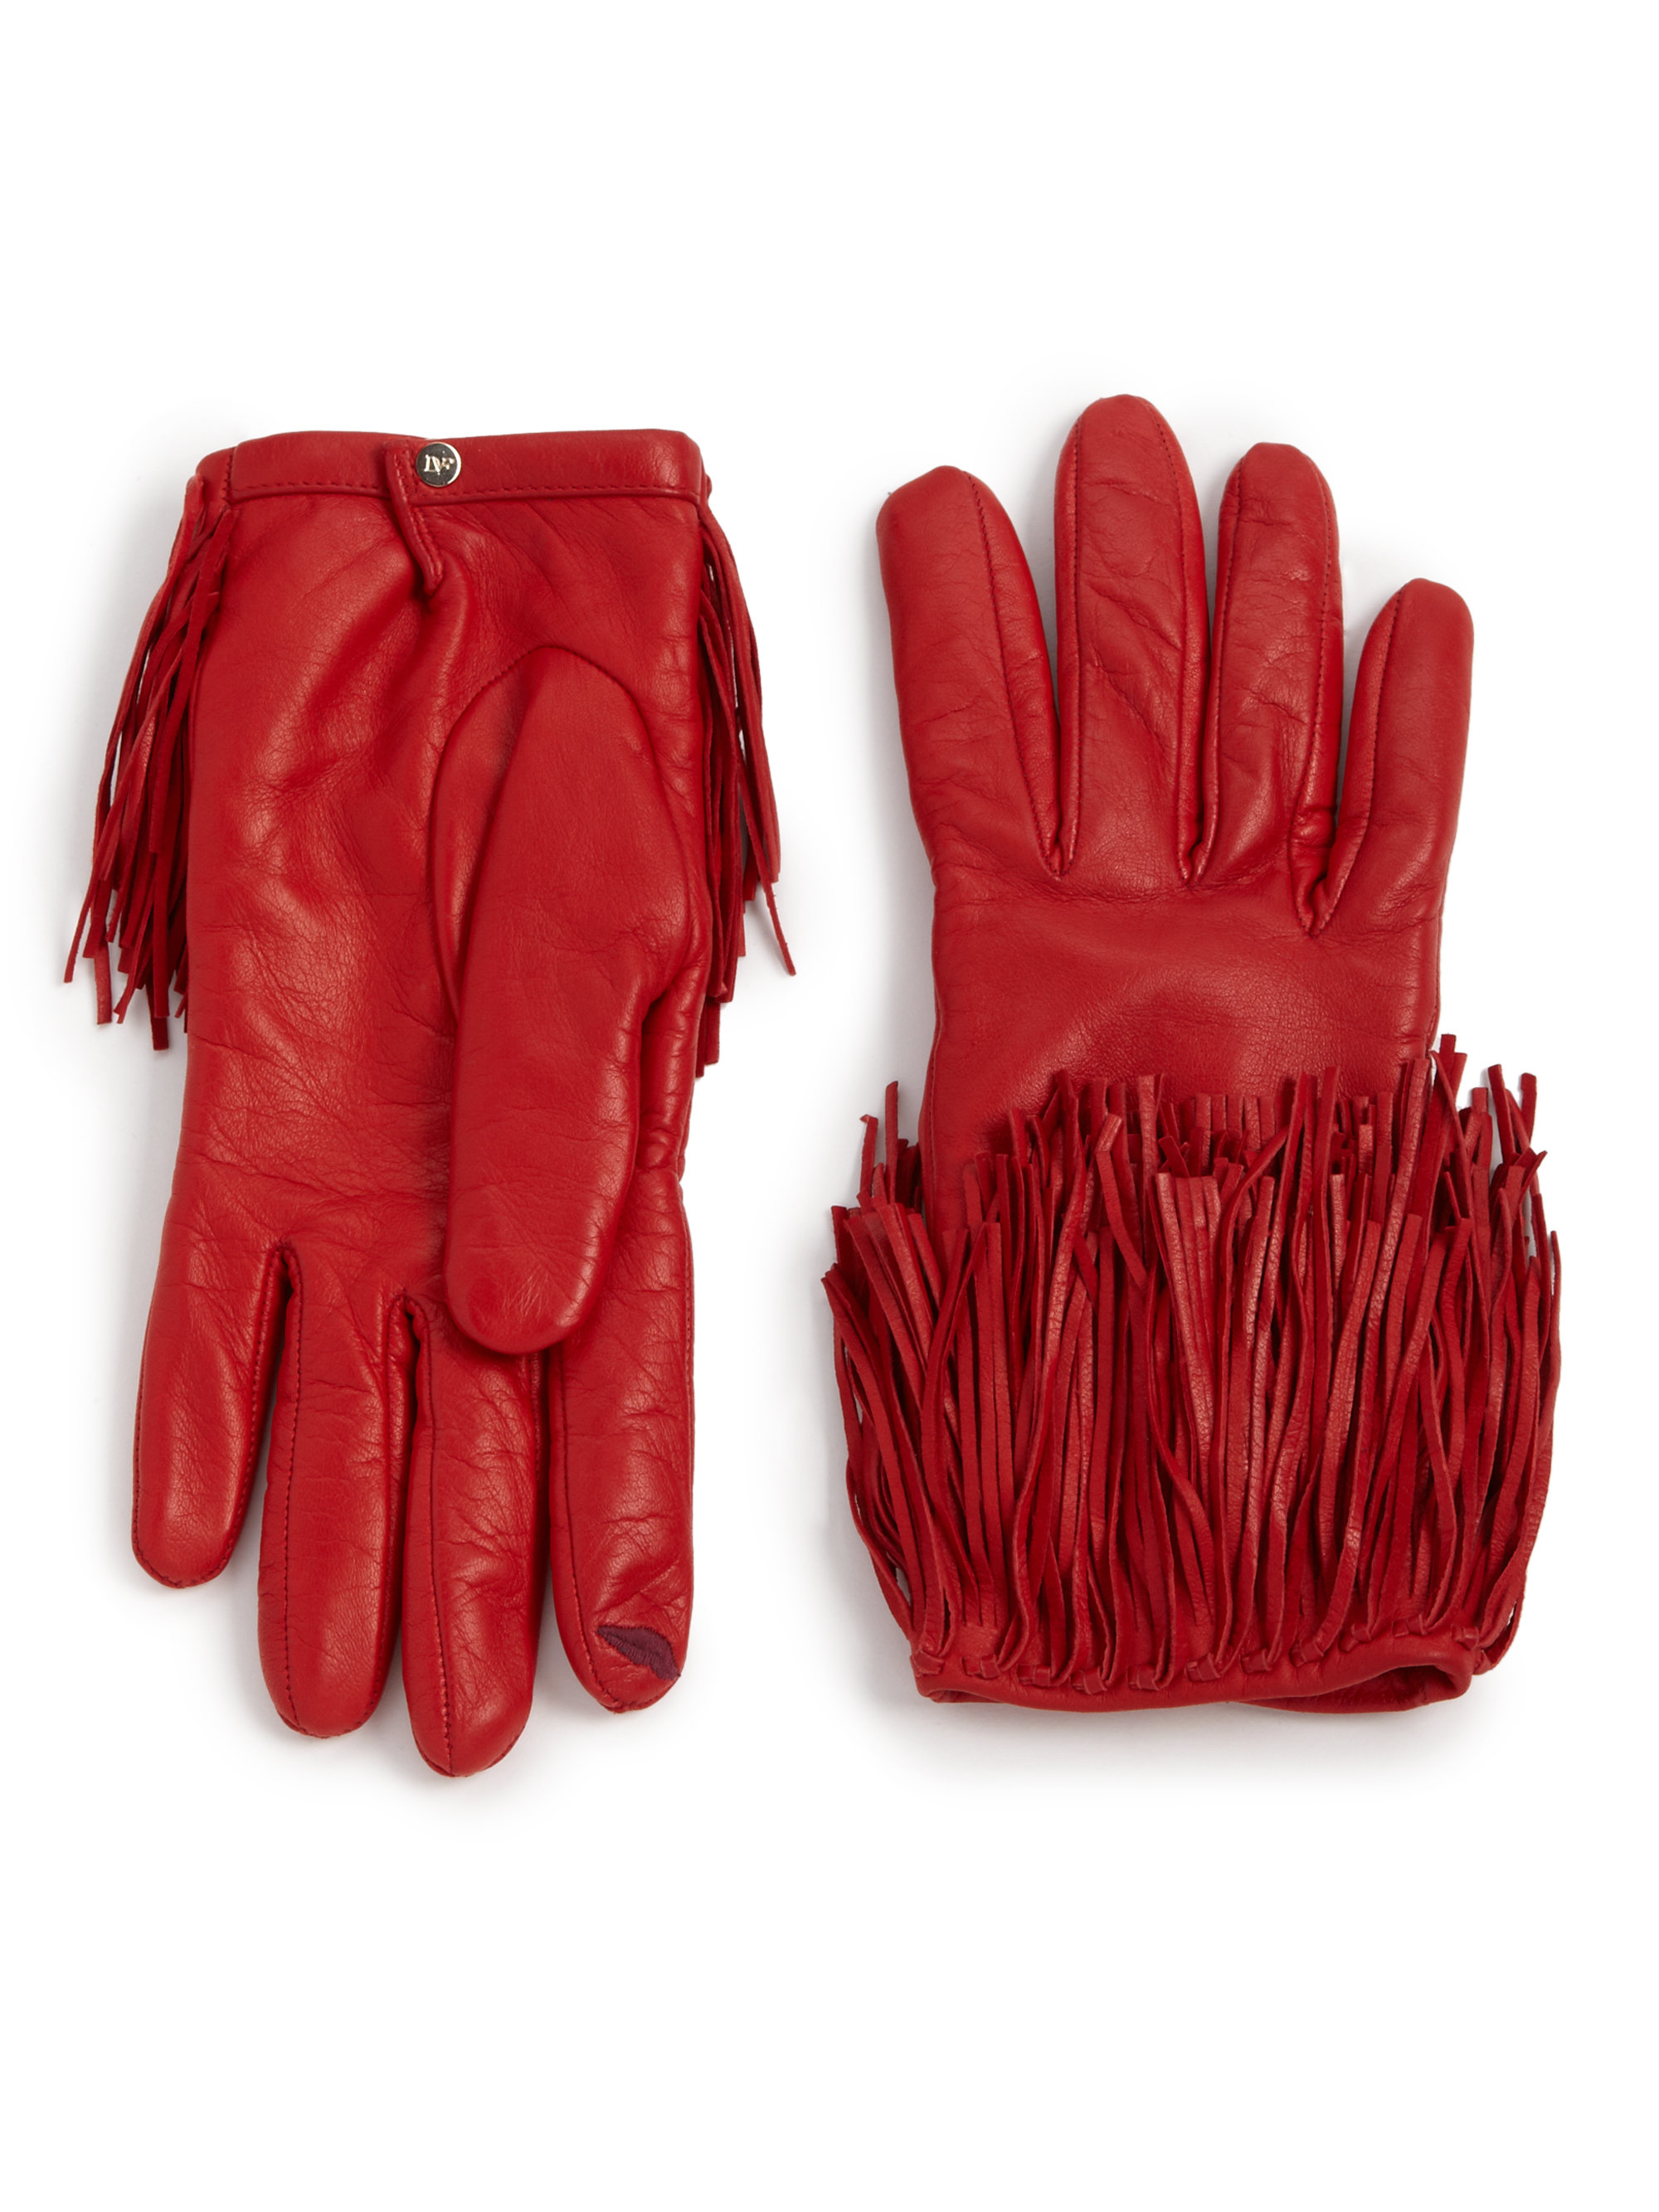 Patent leather driving gloves - Gallery